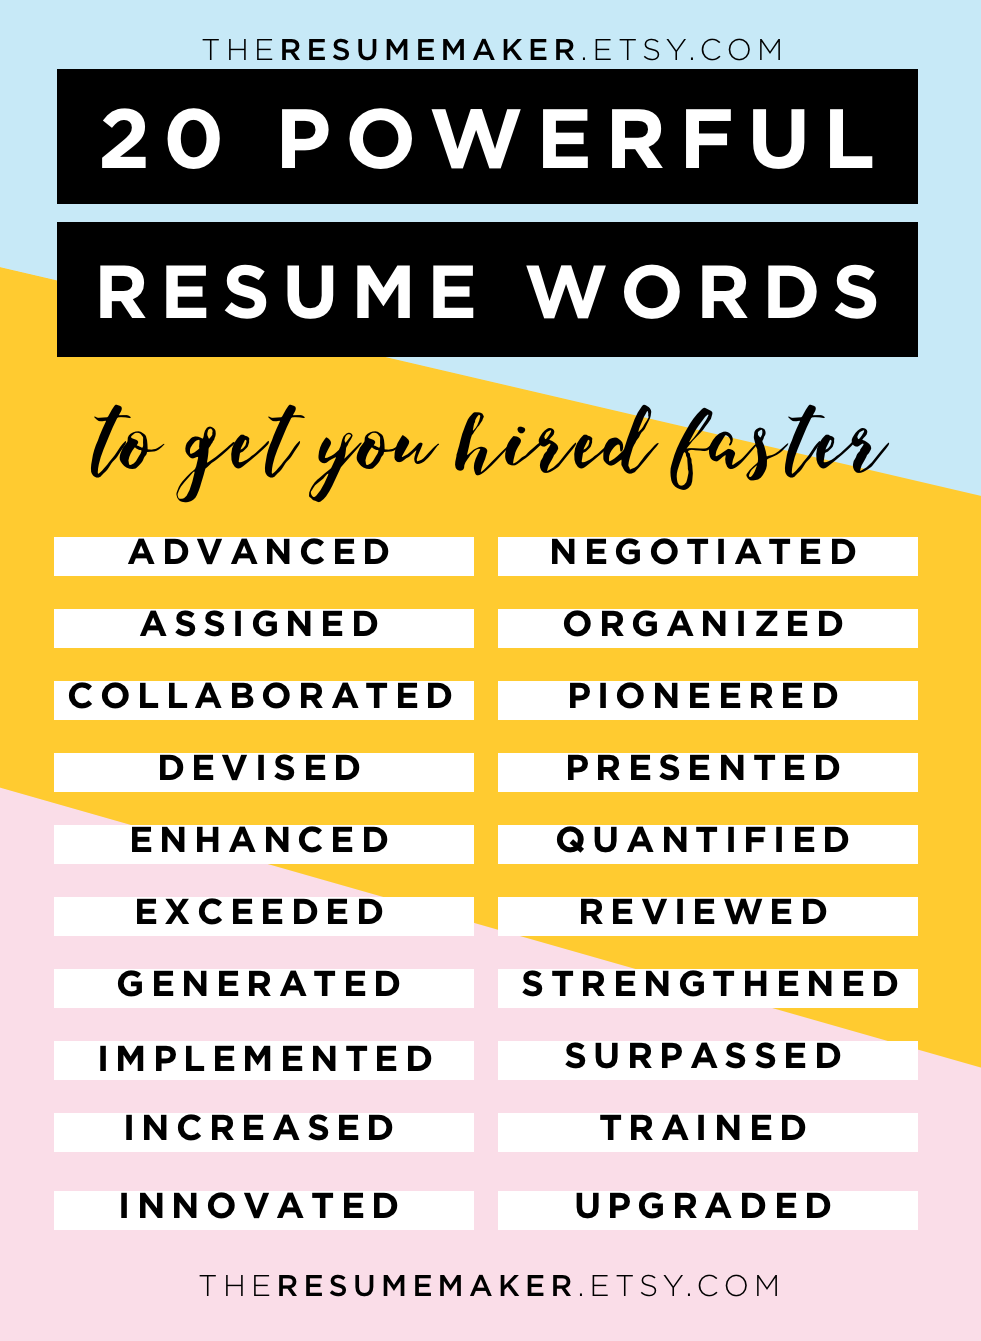 overused resume words